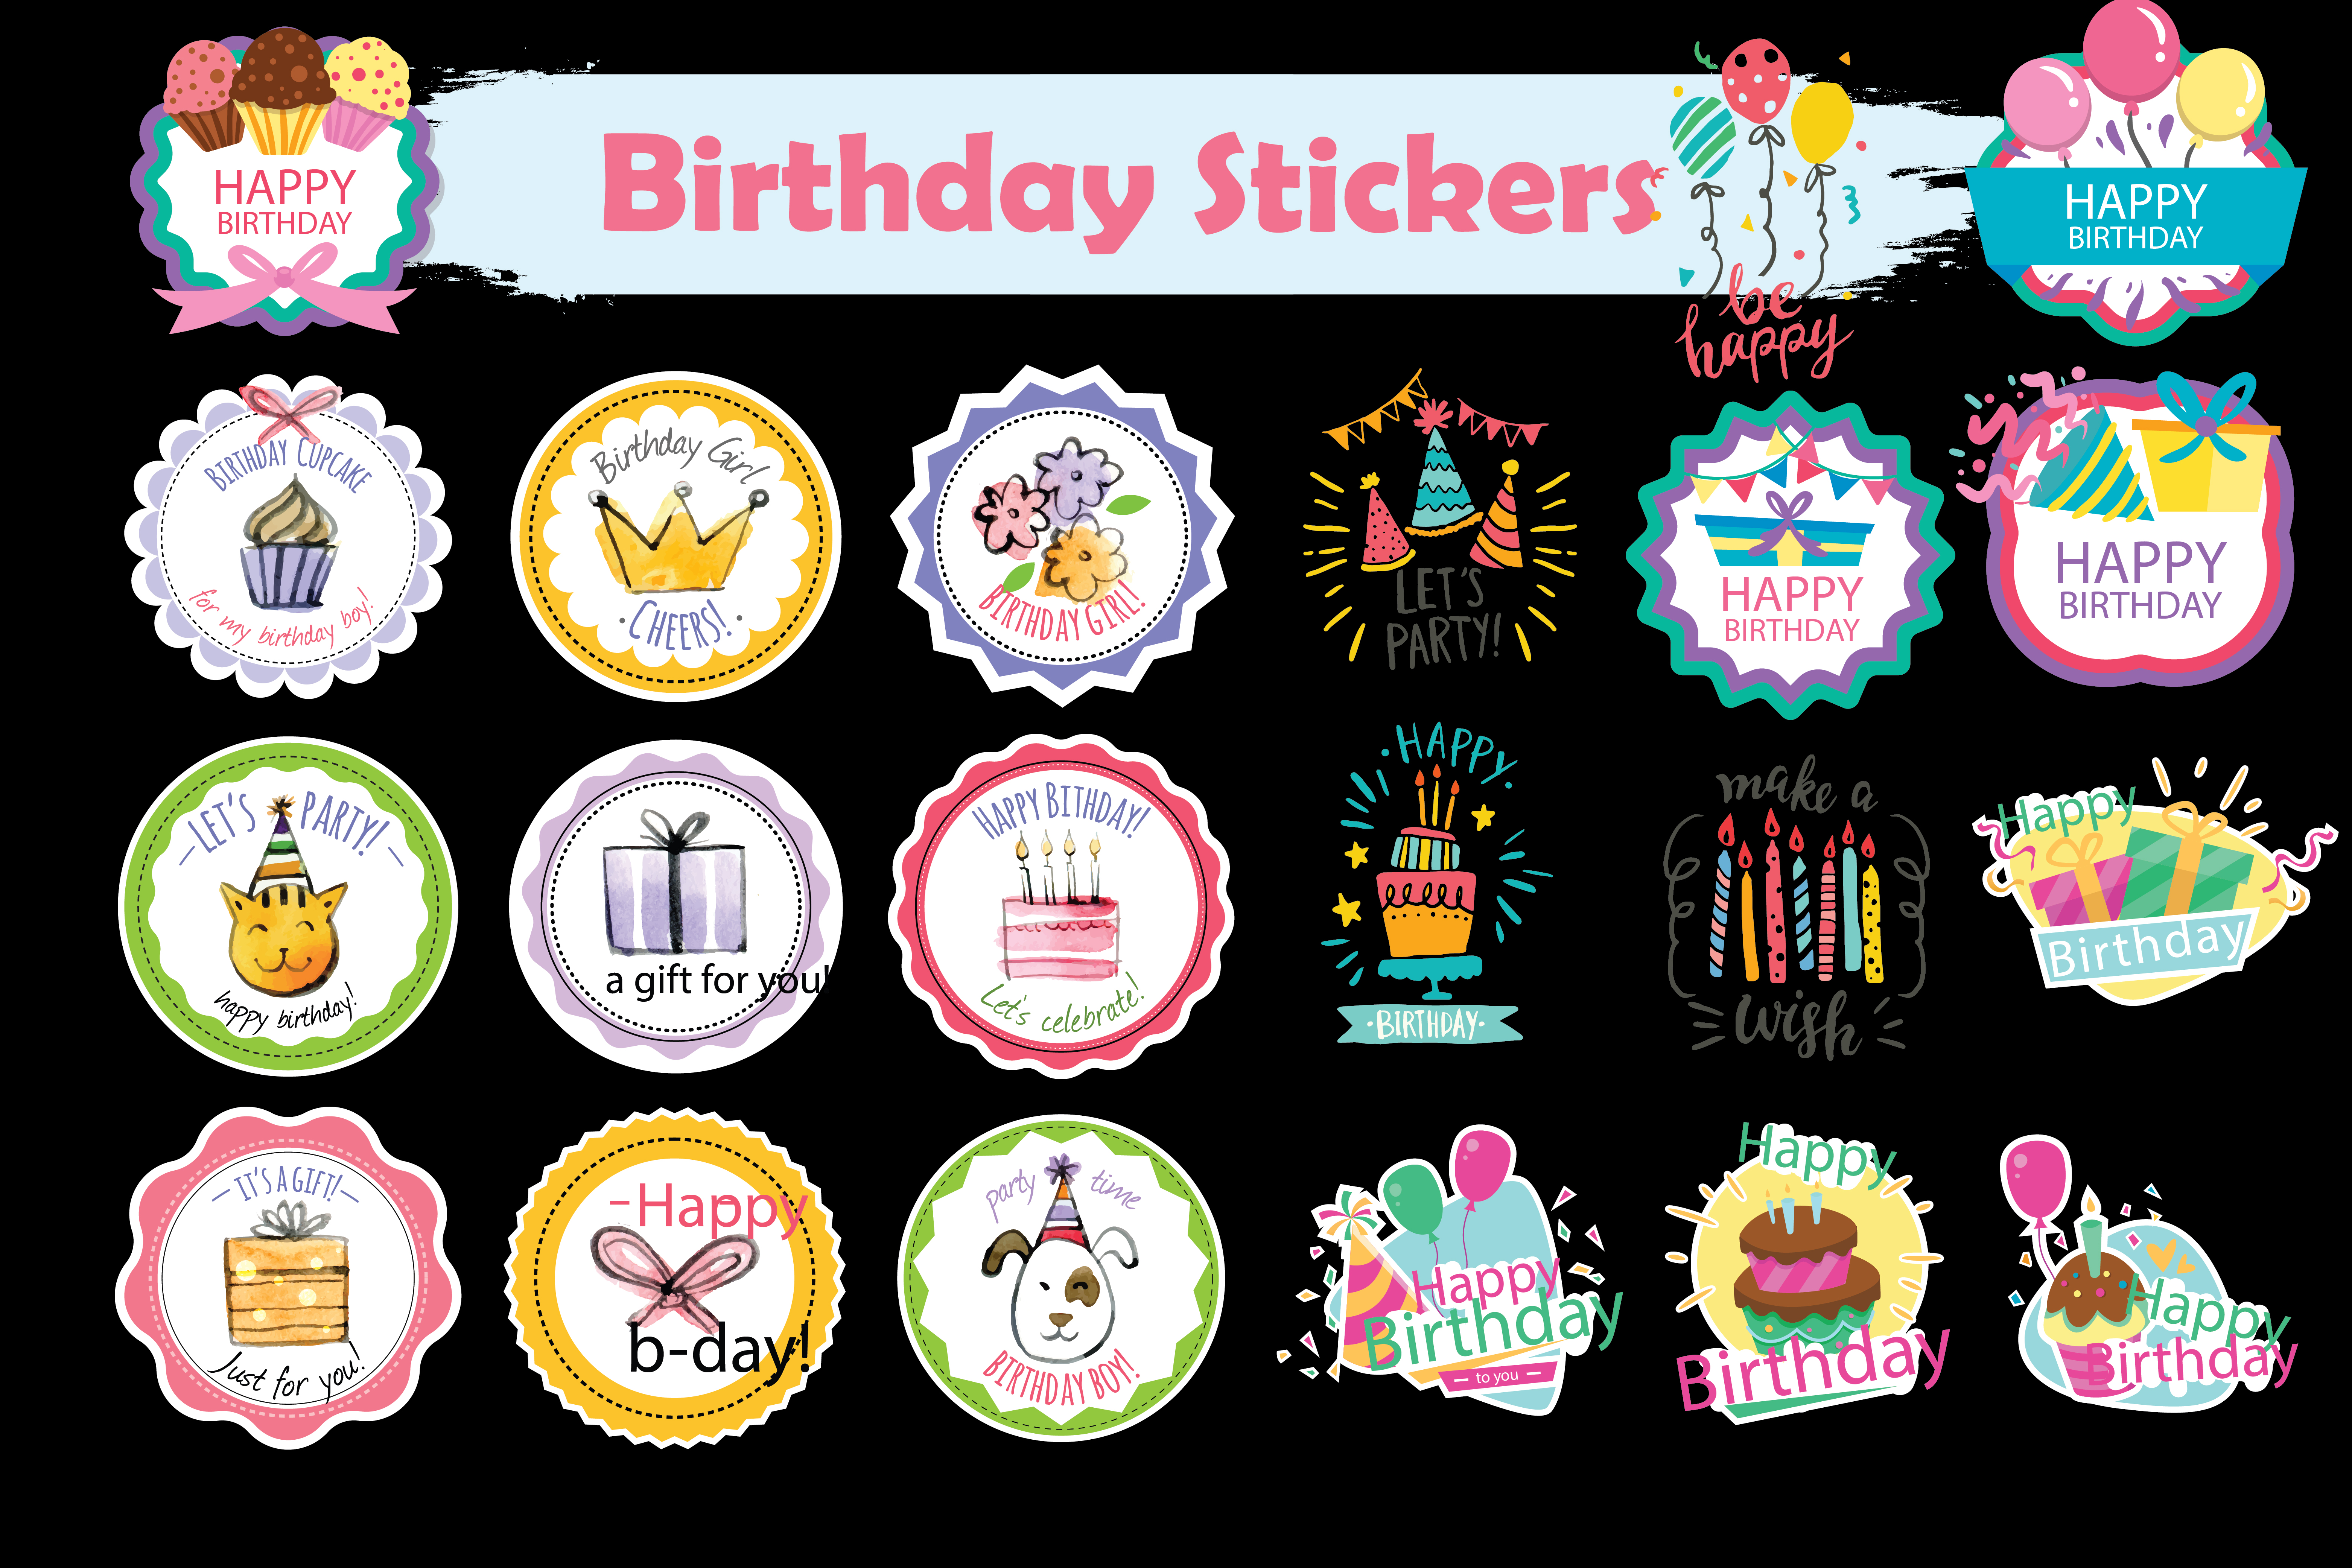 birthday stickers for pictures ; 004873993f422f8414b73ee6f5f317ce_resize